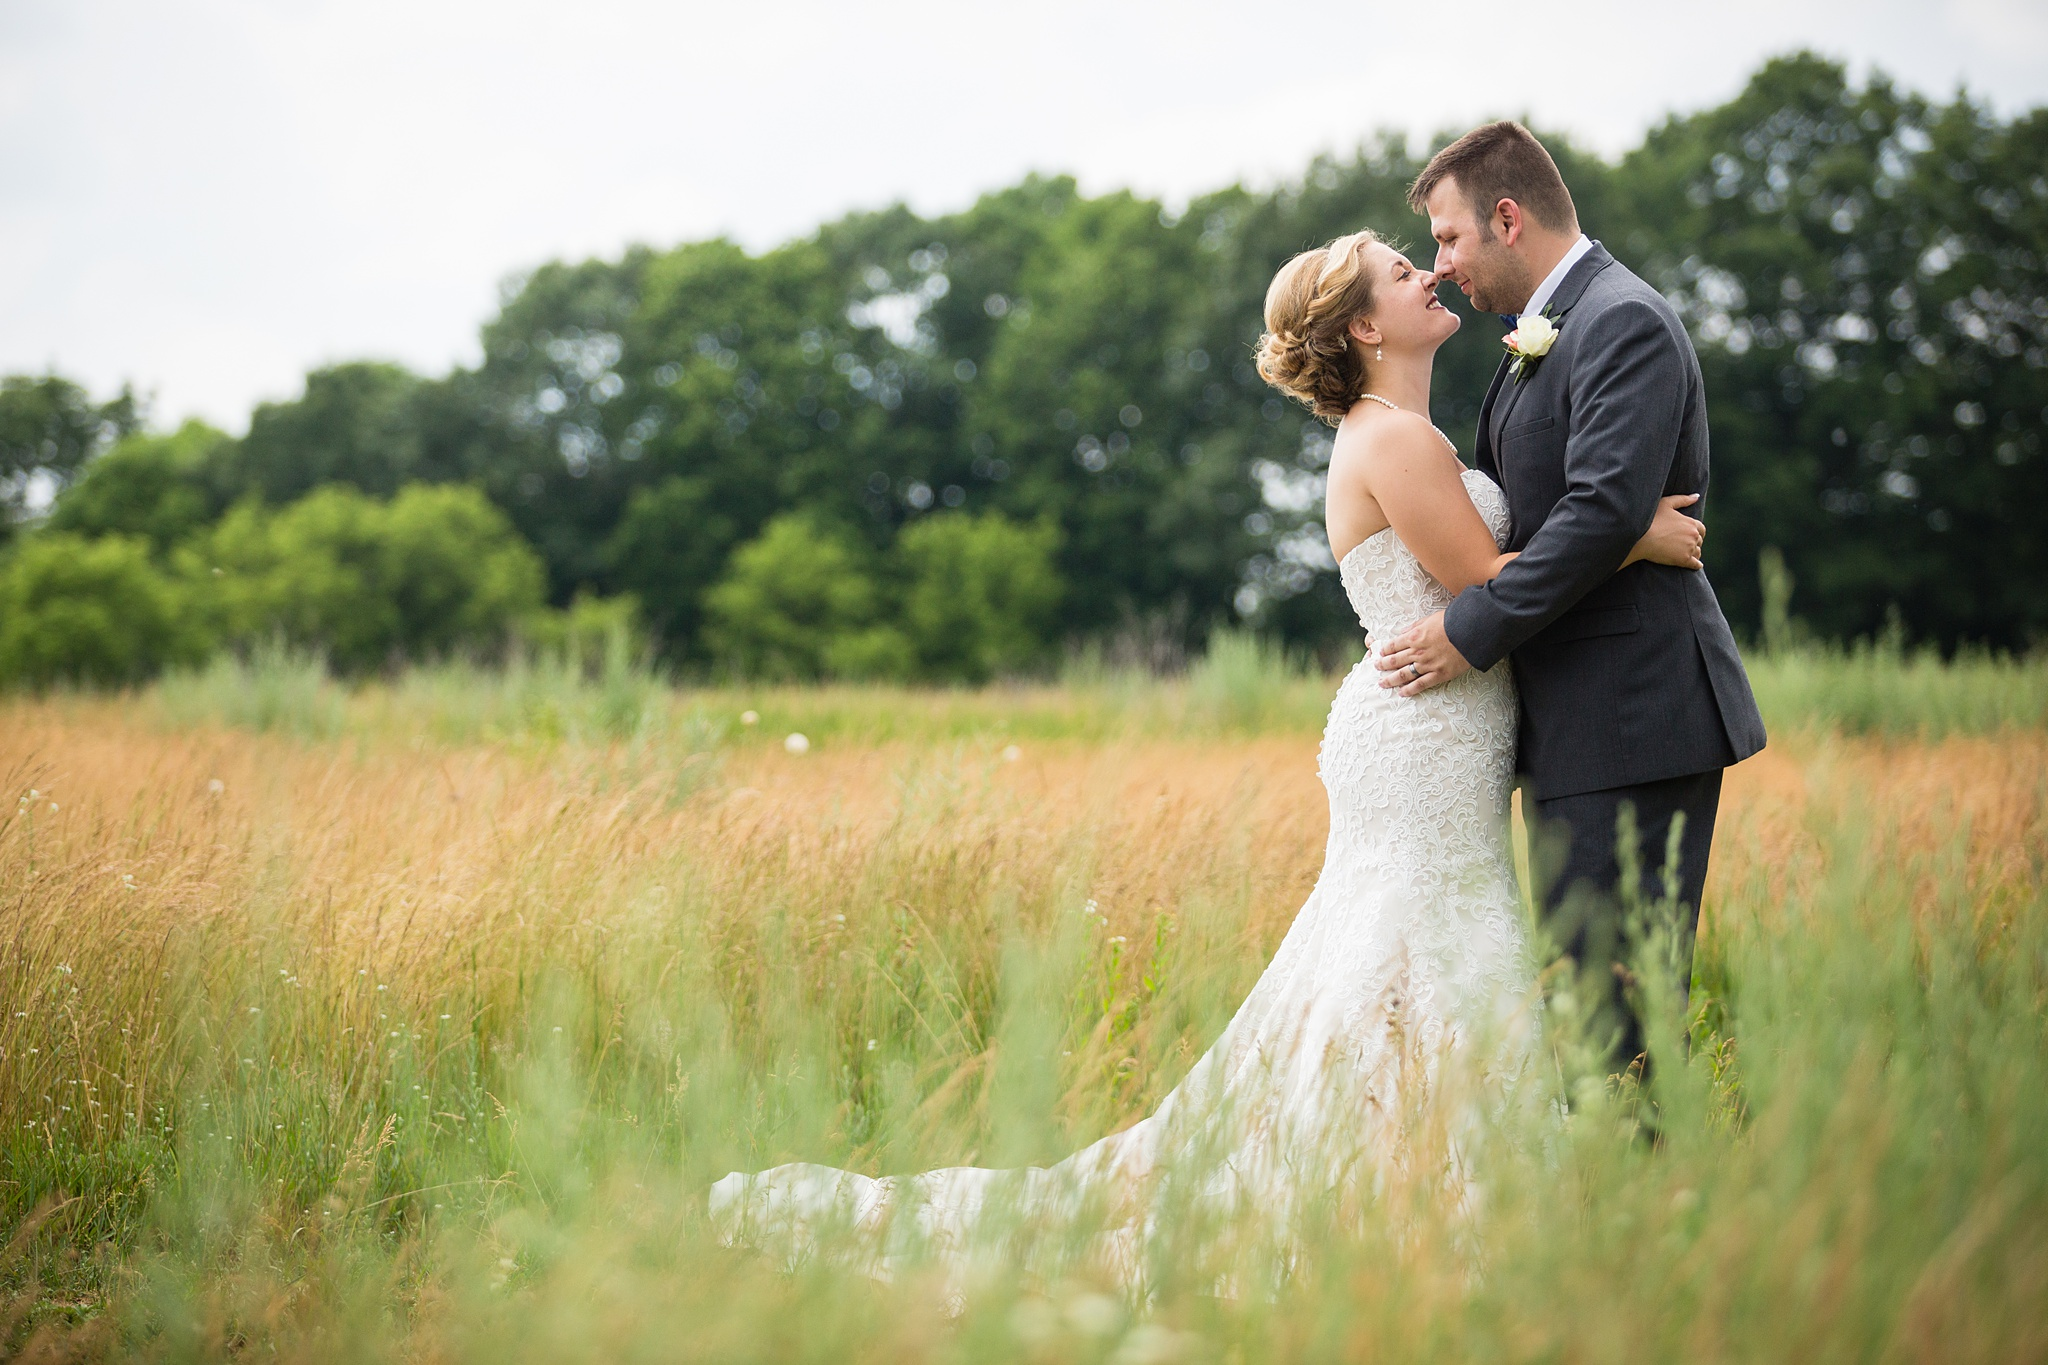 Brandon_Shafer_Photography_Grand_Rapids_Bride_Groom_0033.jpg